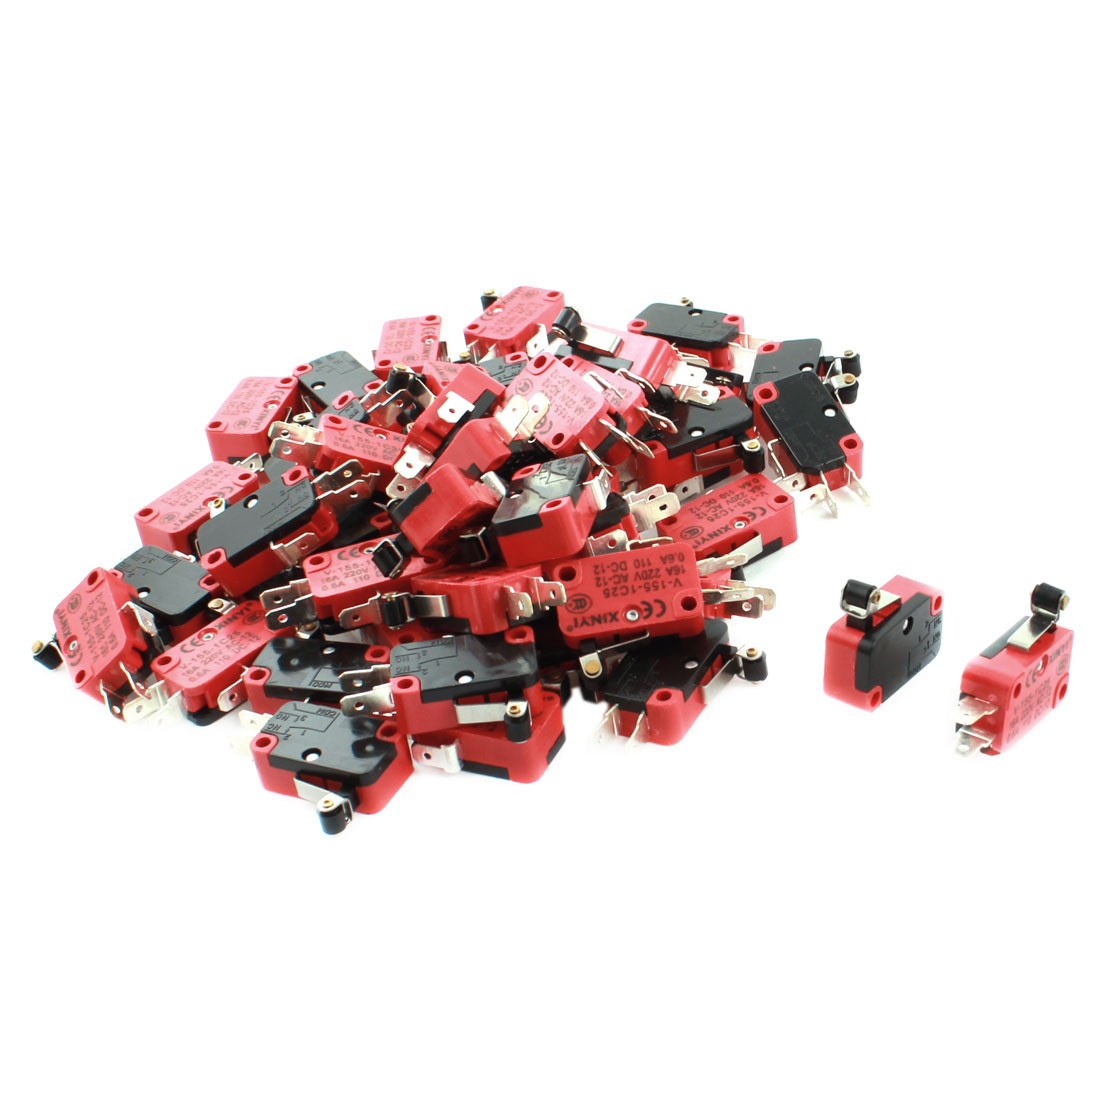 50 Pcs V-155-1C25 Micro Limit Switch Short Roller Lever Arm SPDT Snap Action LOT